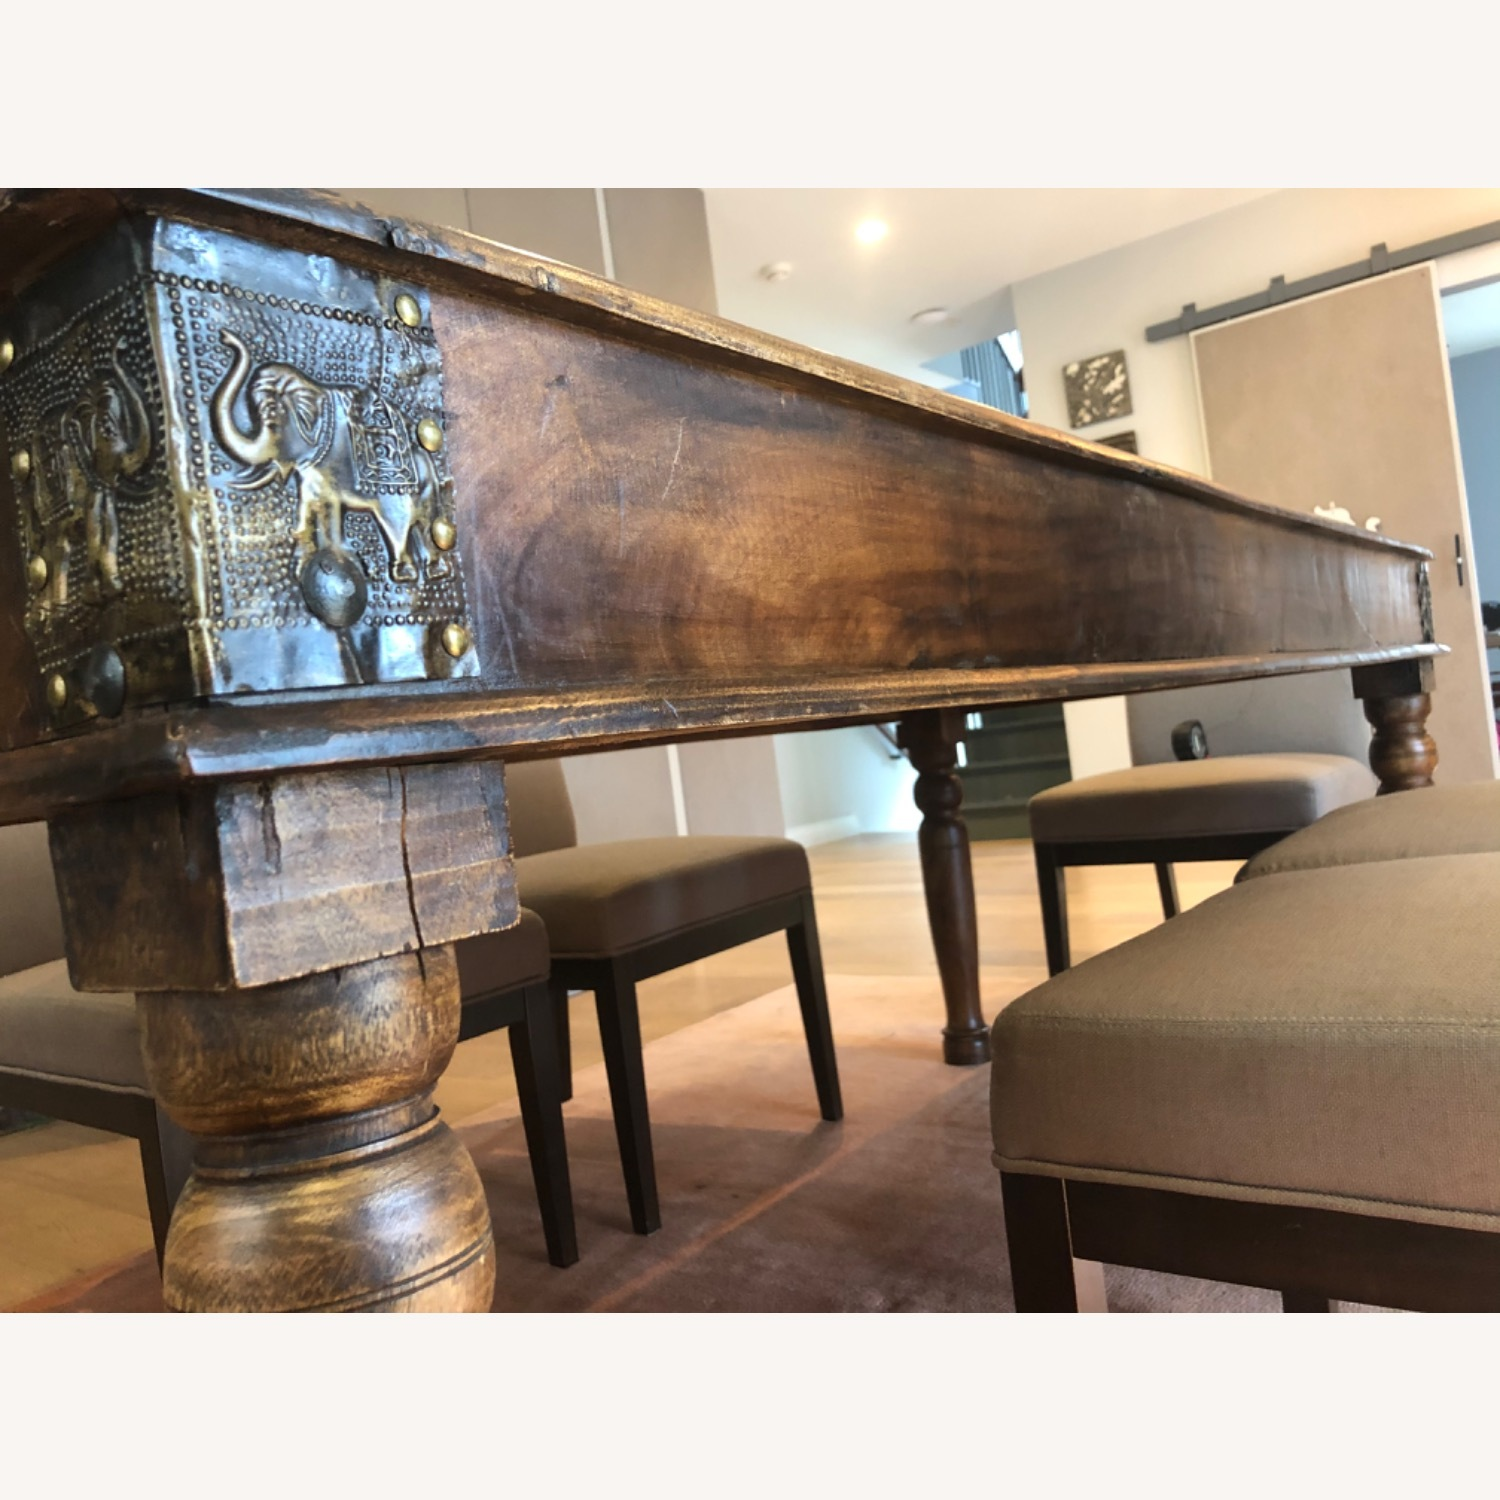 Antique Hand Carved Wood Table with Brass Accents - image-1